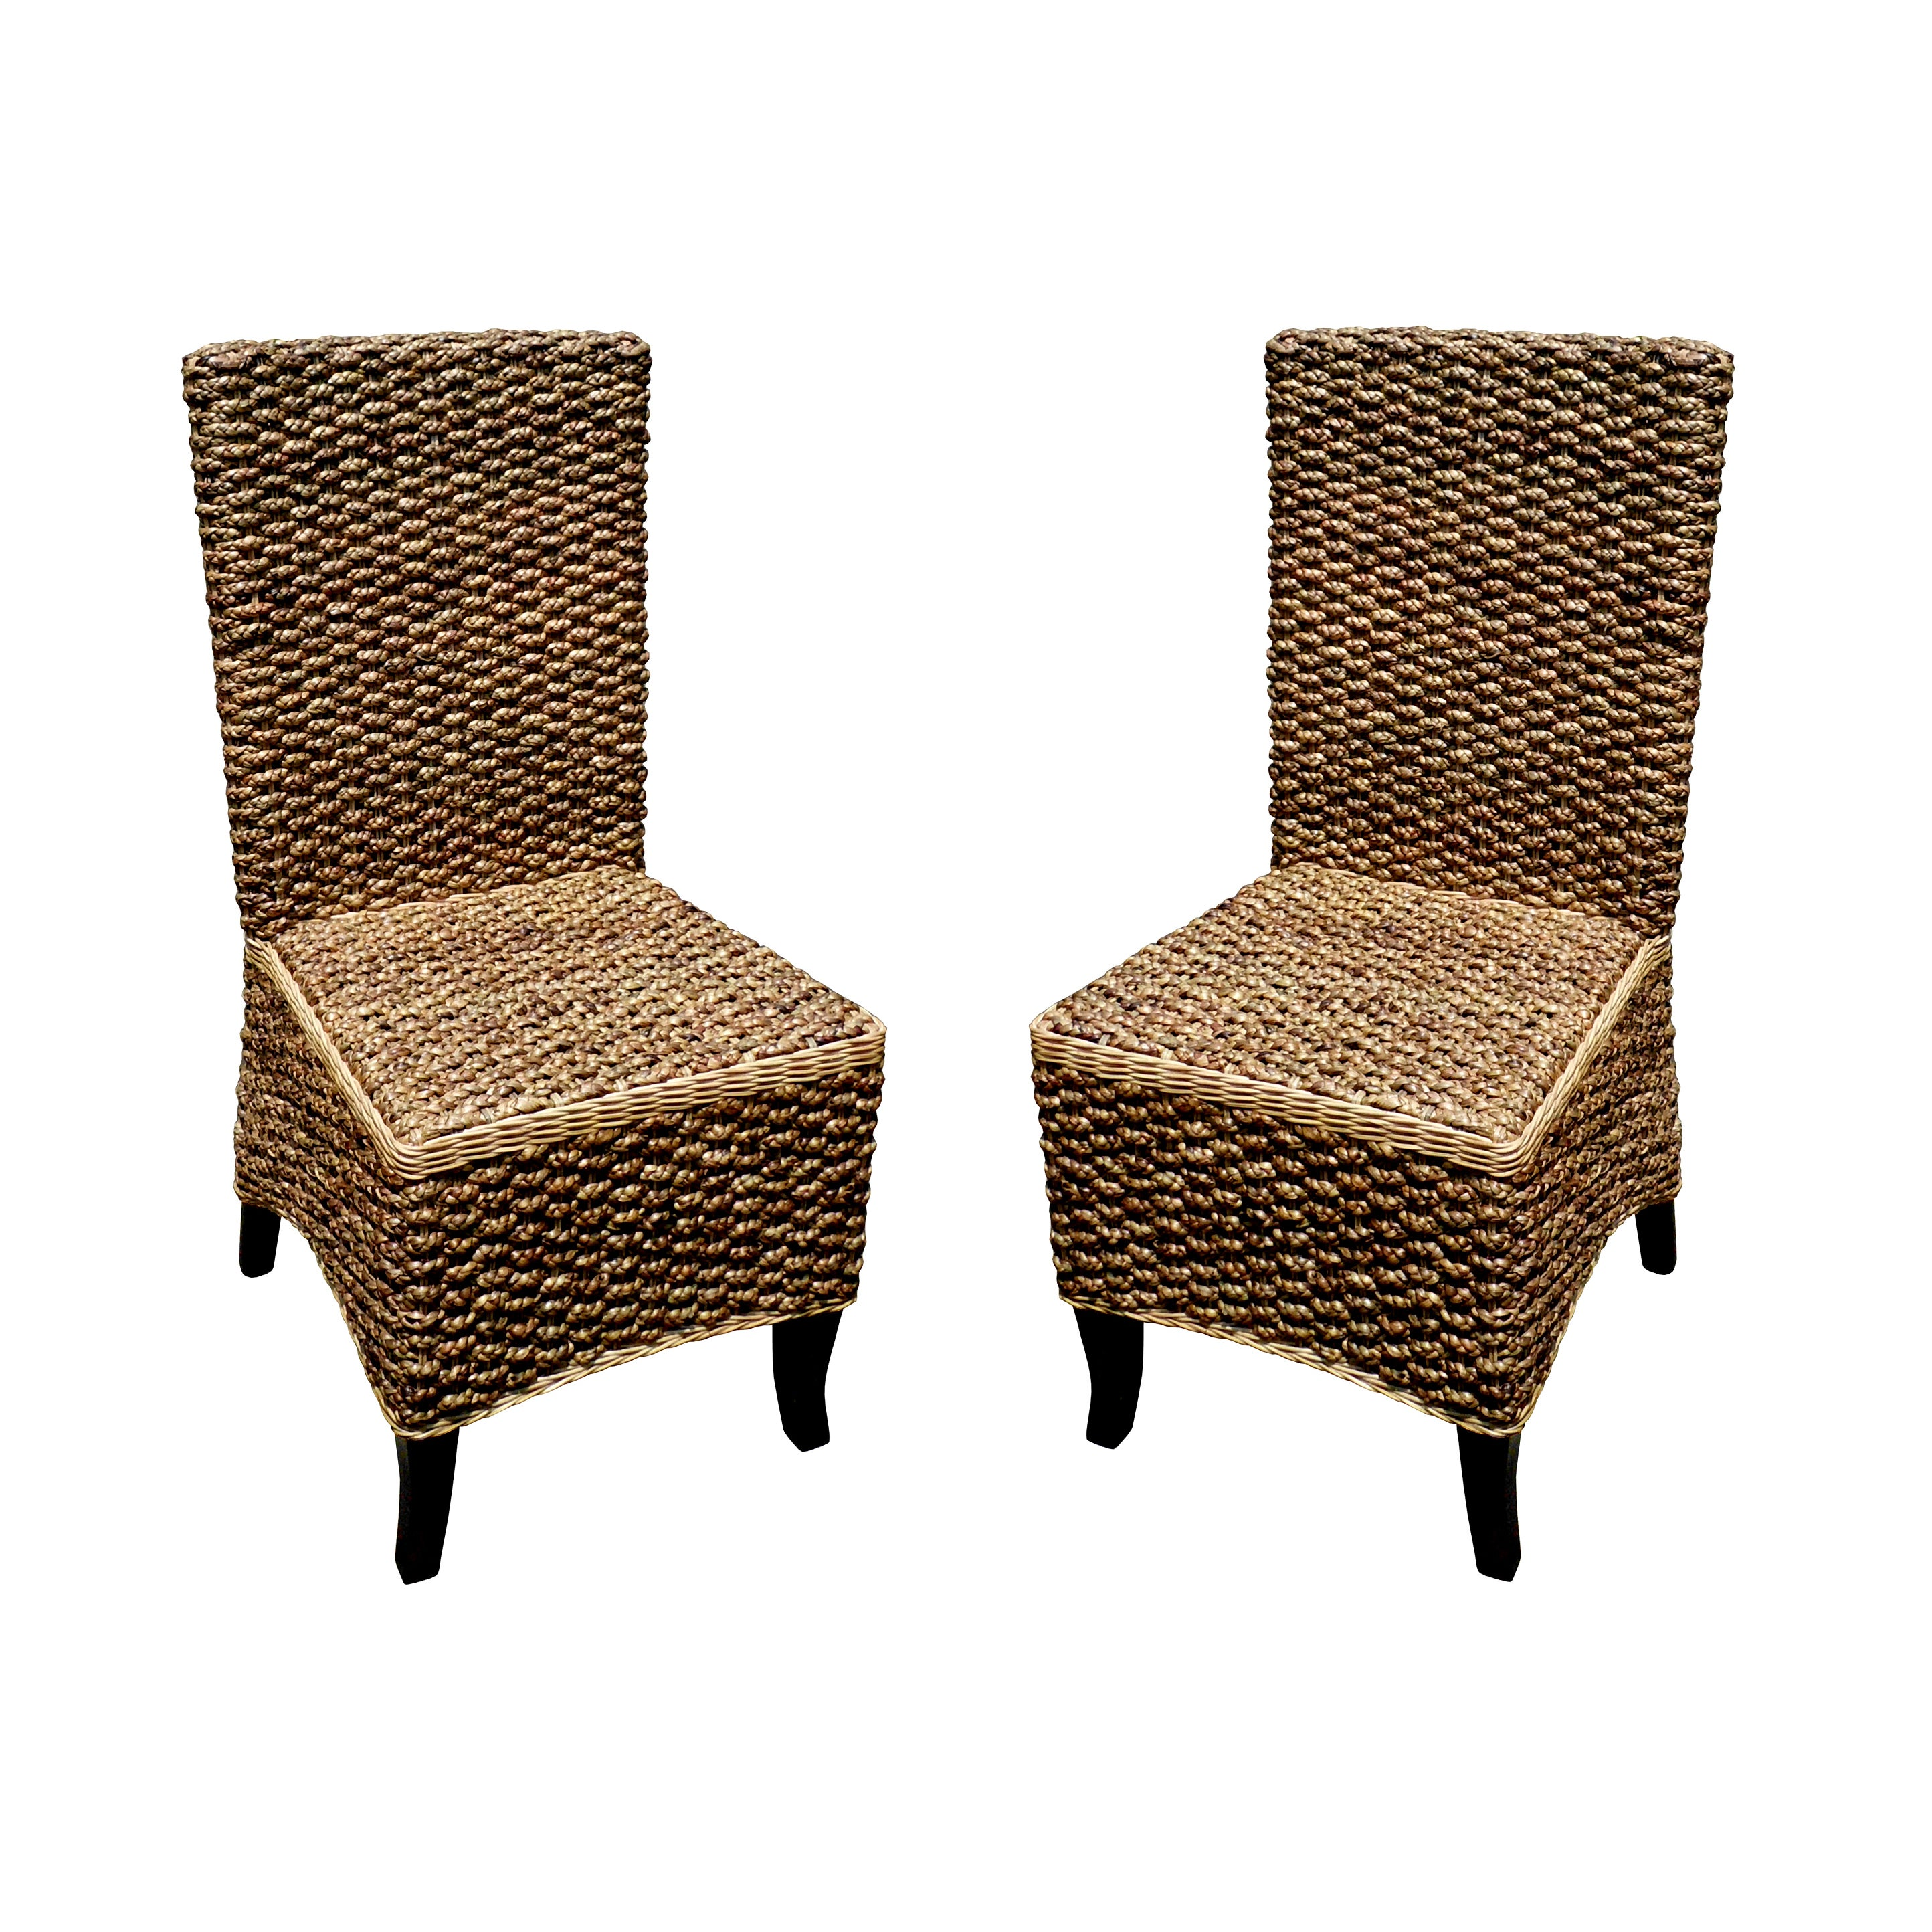 Handmade D-Art Seagrass Dining Chair (Indonesia) (Seagras...